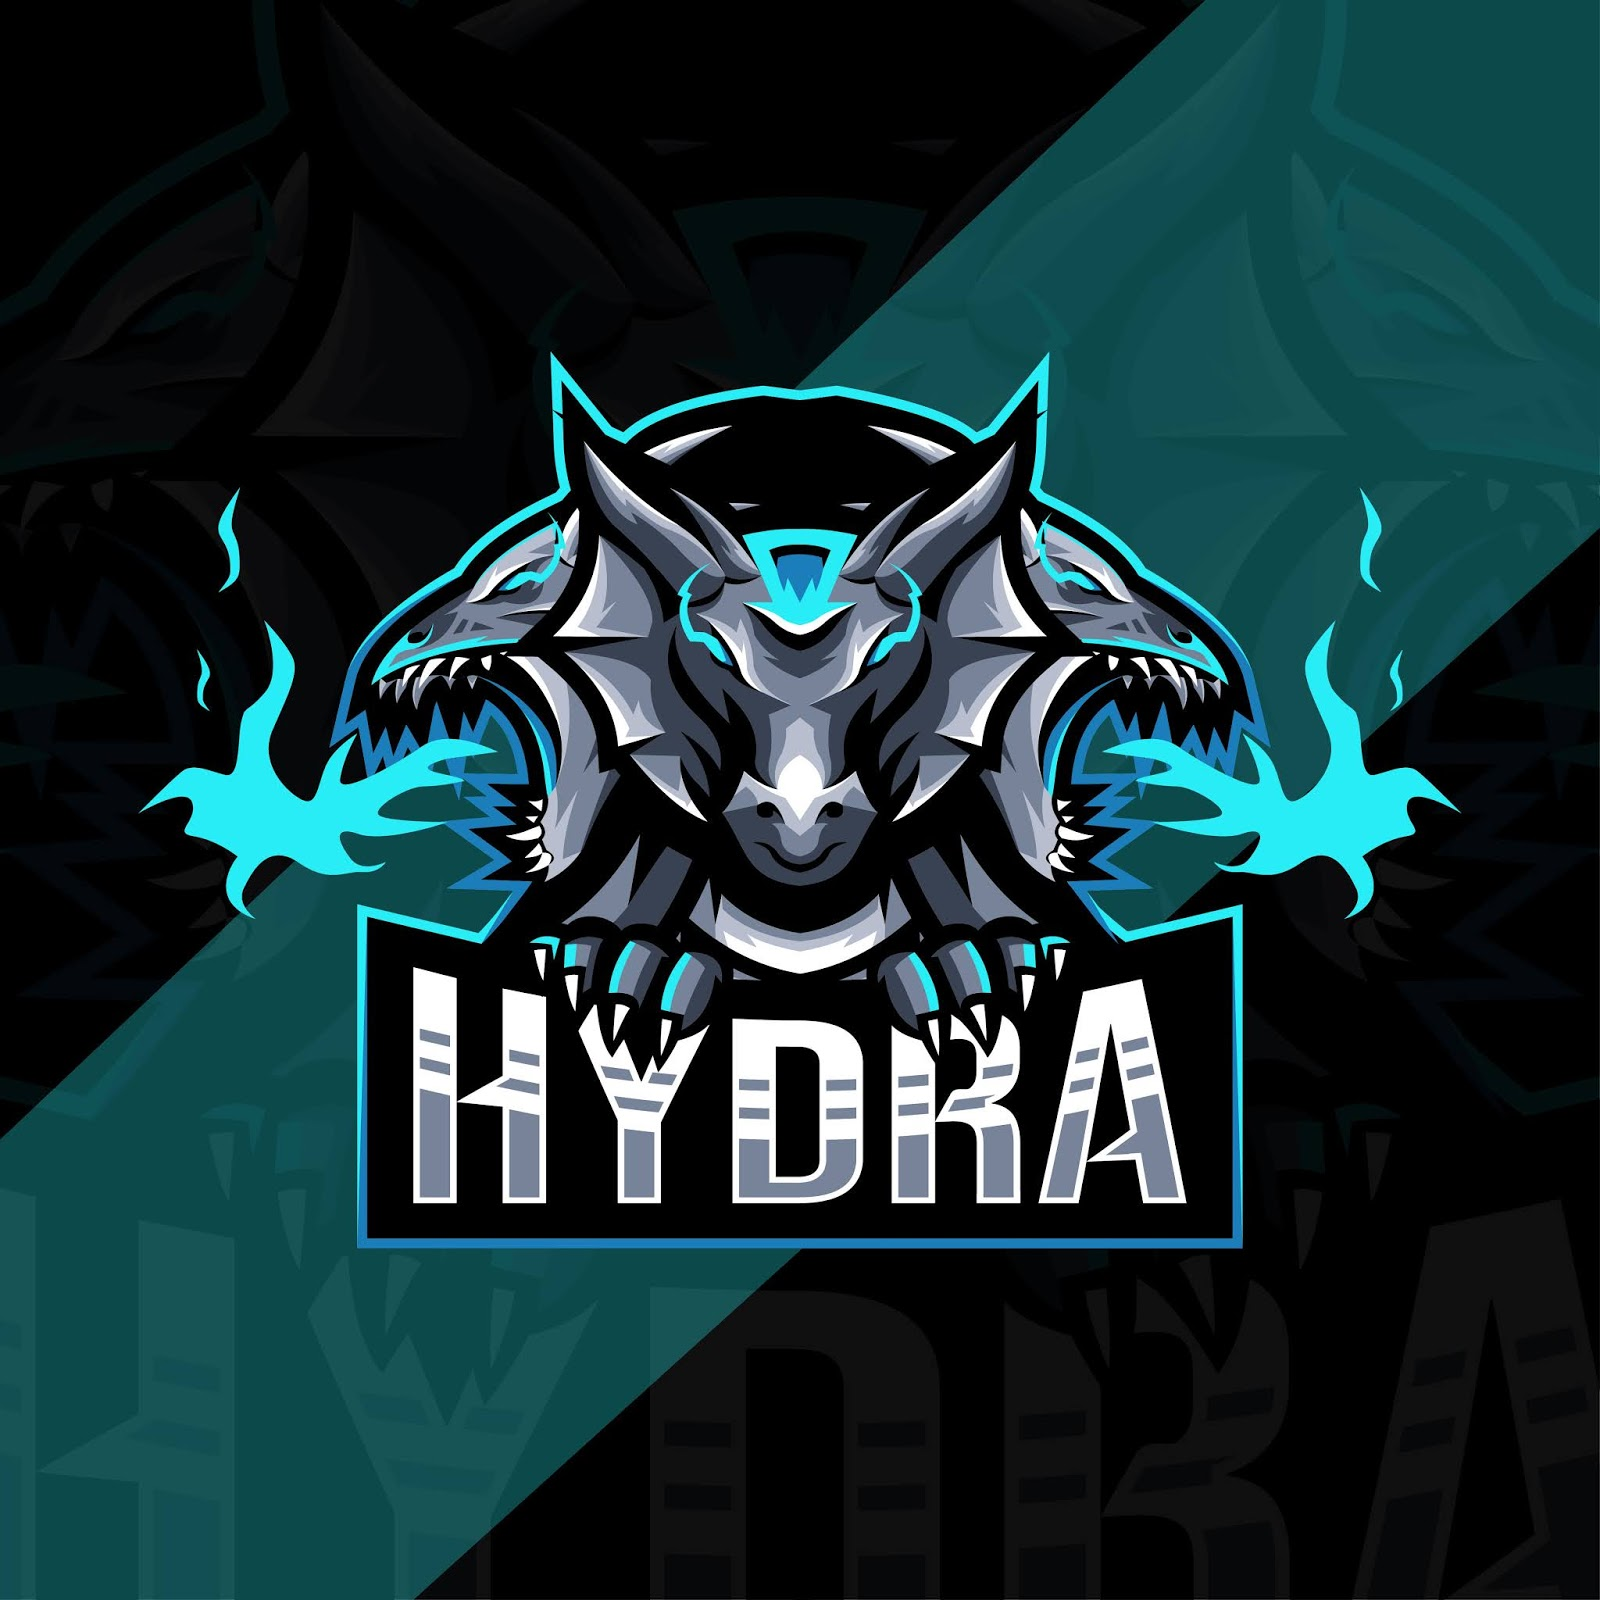 Hydra Mascot Logo Esport Template Free Download Vector CDR, AI, EPS and PNG Formats